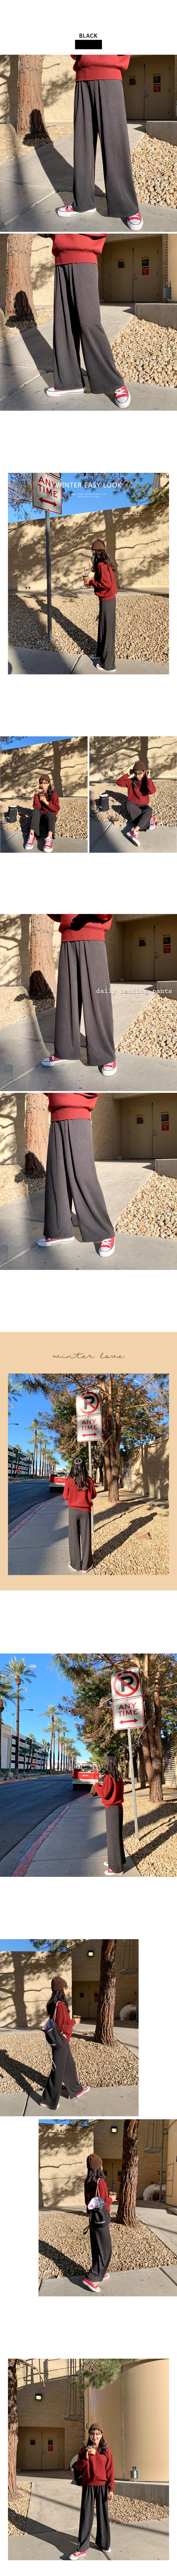 Waist banding wide knit pants P#YW114